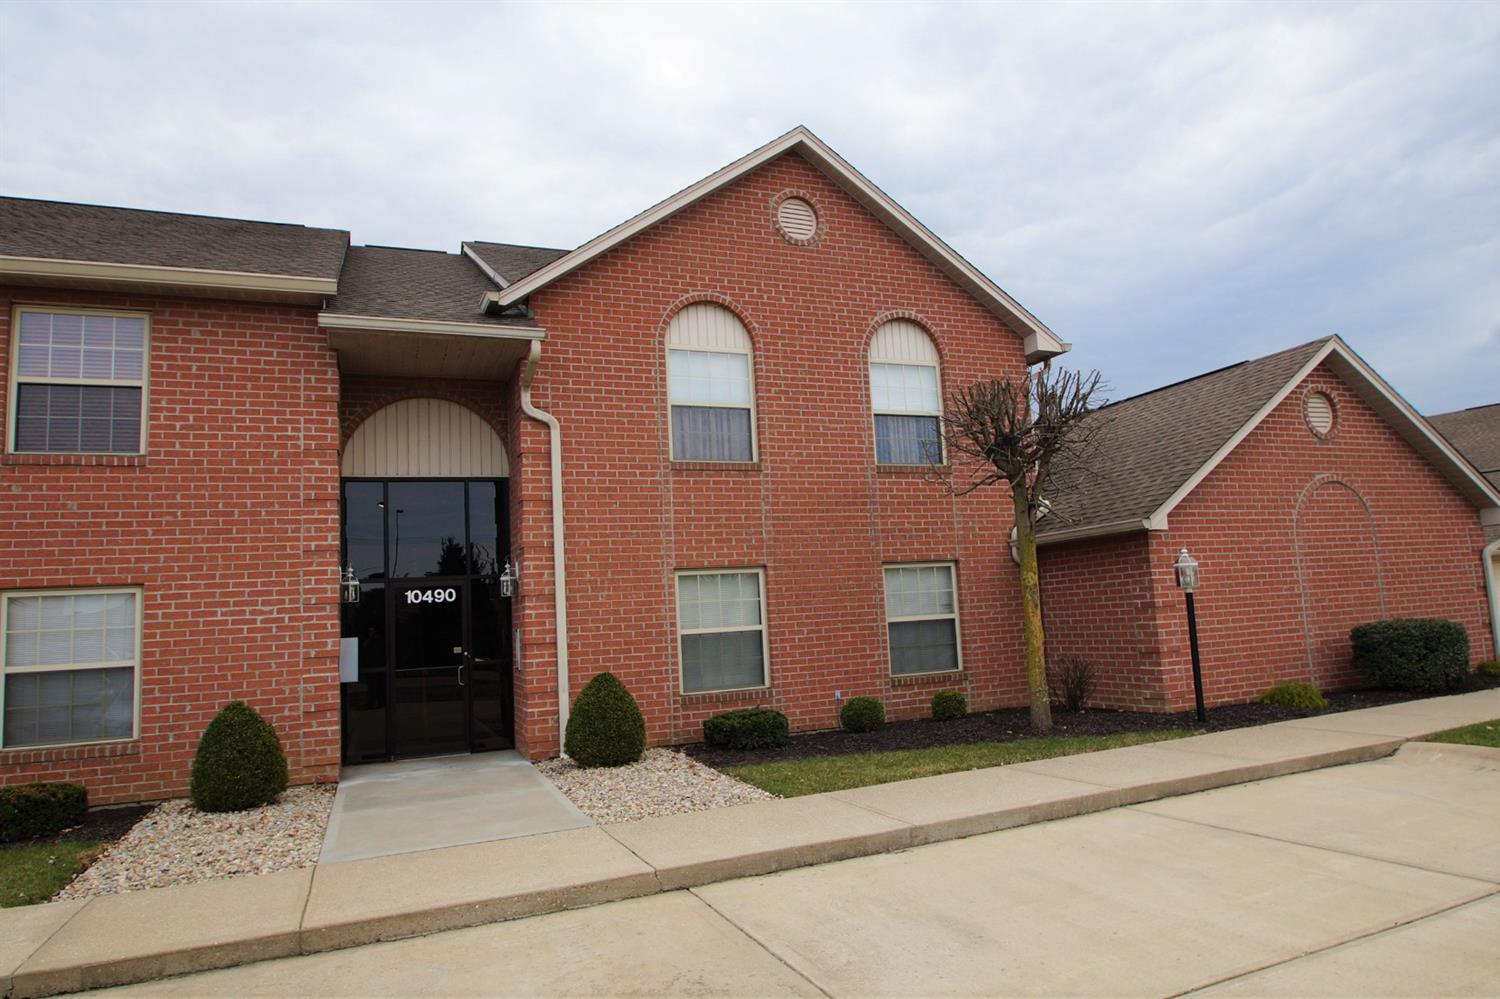 Property for sale at 10490 West Road Unit: 71, Harrison,  Ohio 45030